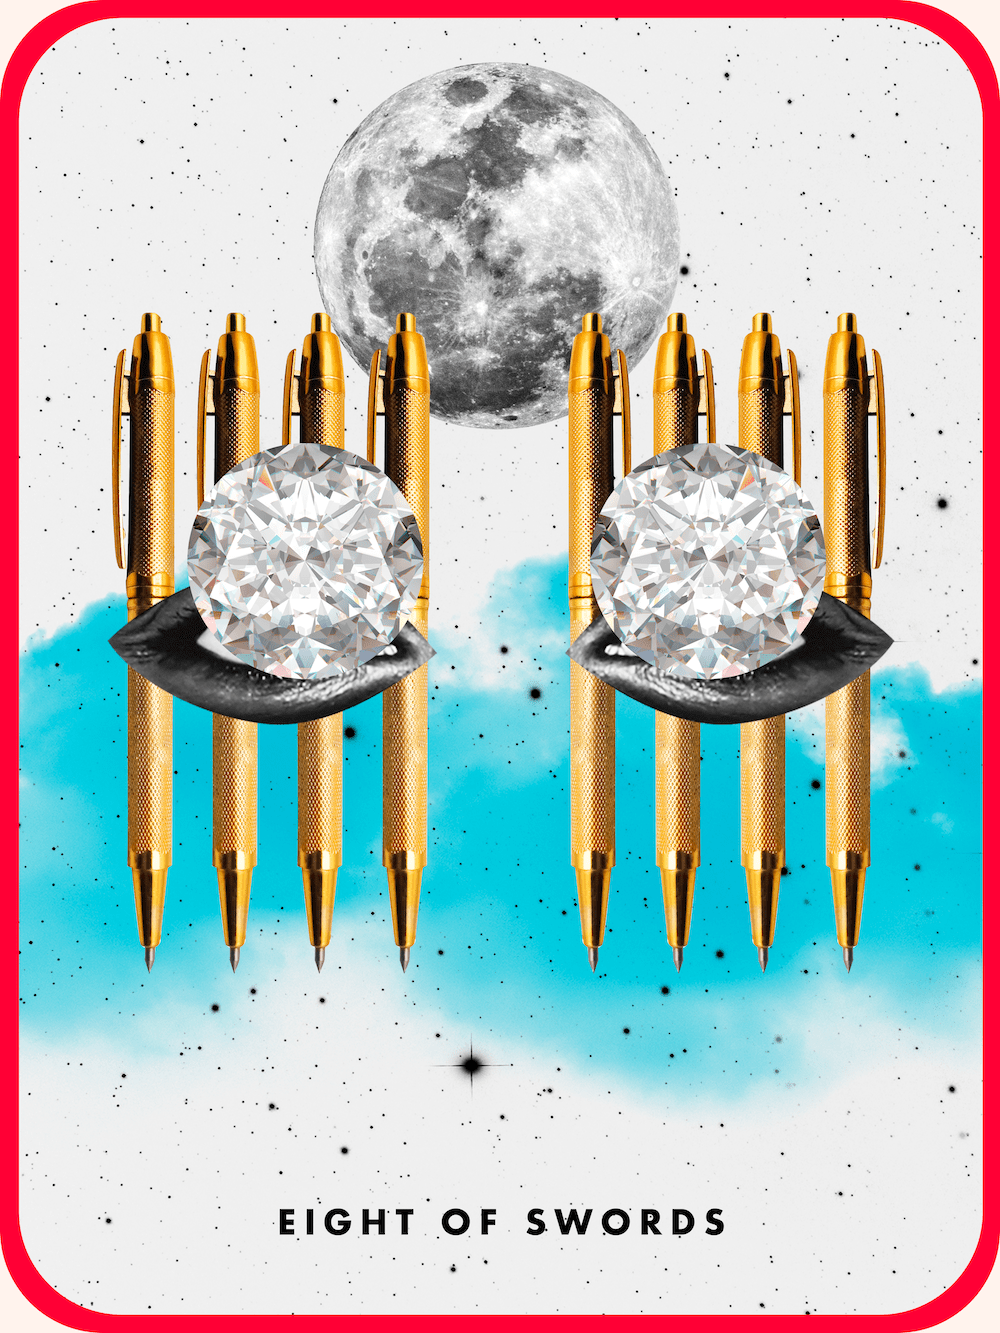 the tarot card the eight of swords, showing eight gold pens behind cutouts of lips and diamonds